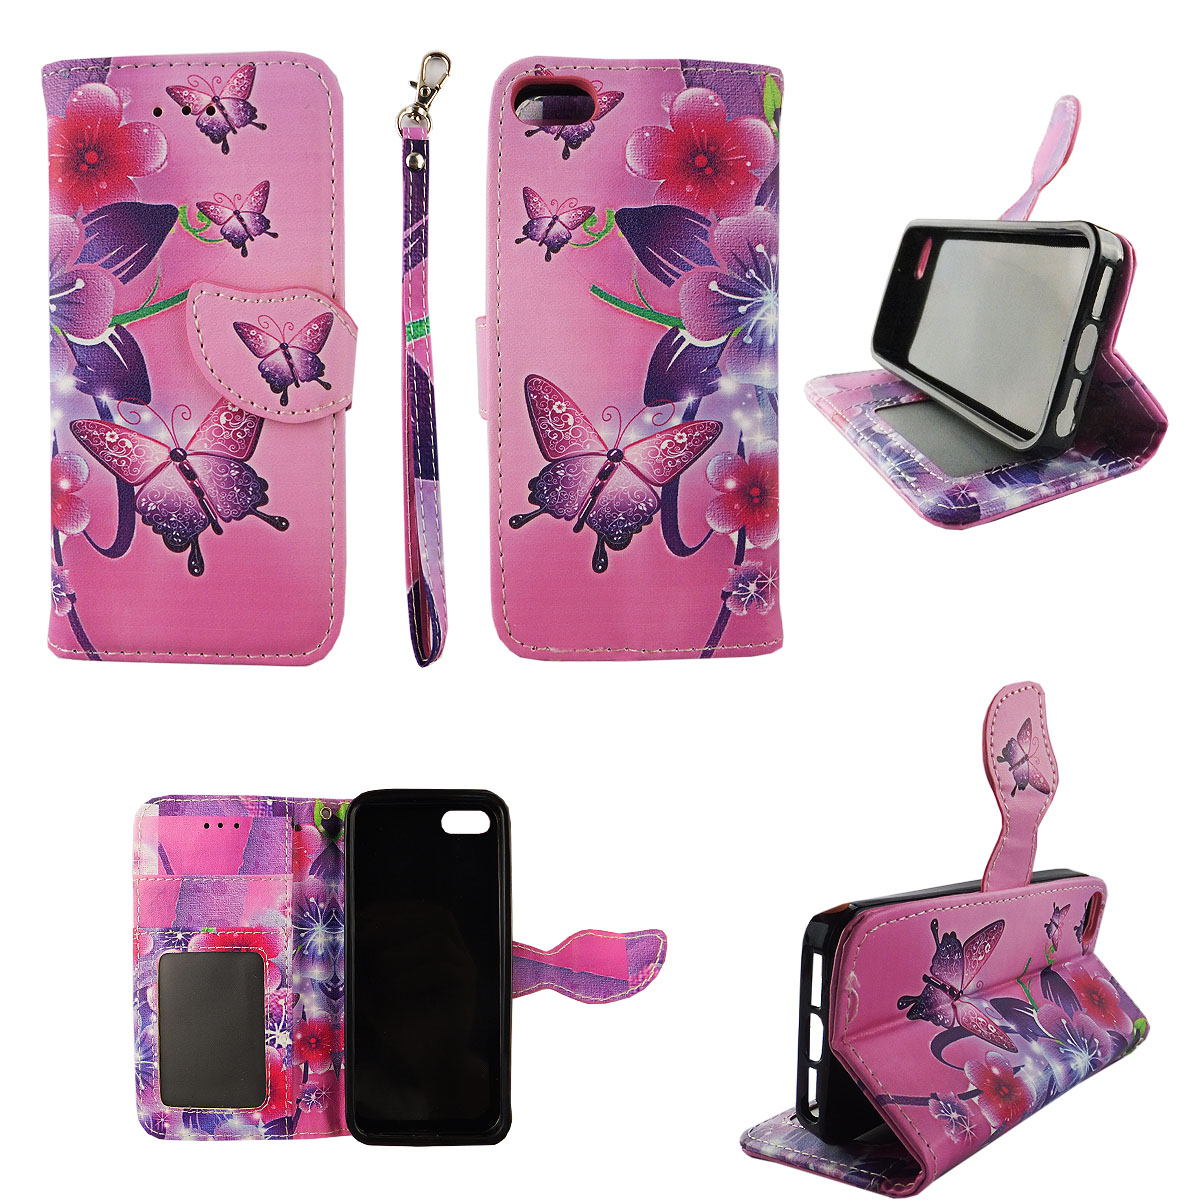 Butterfly Flower Pink Wallet Folio Case for iPhone SE 5S 5 Fashion Flip PU Leather Cover Card Cash Slots & Stand